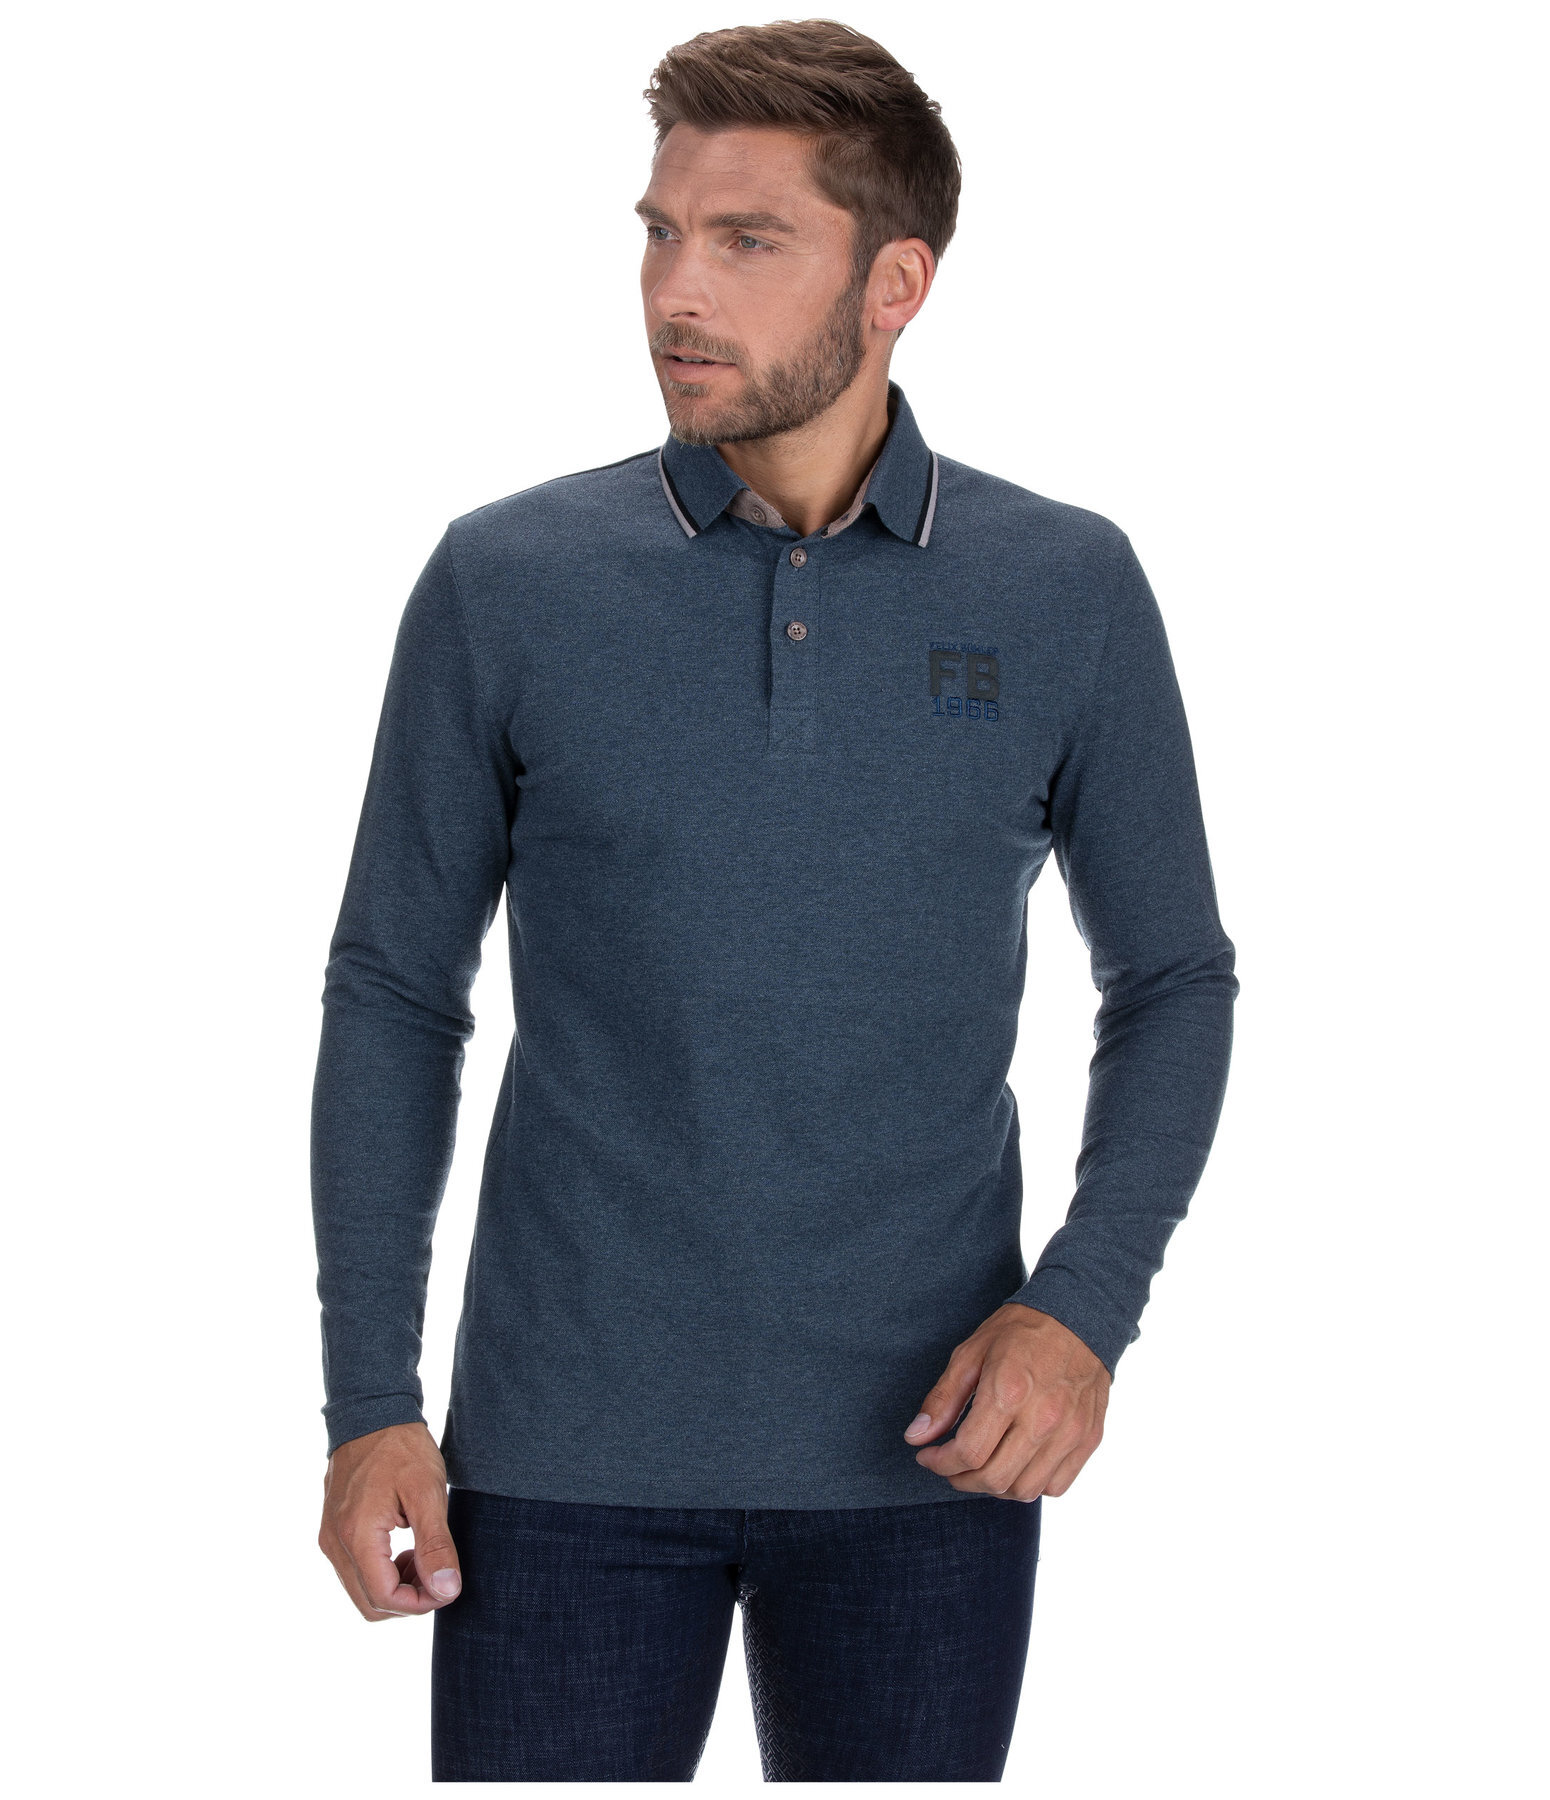 Men's Long-Sleeved Polo Shirt Jayden